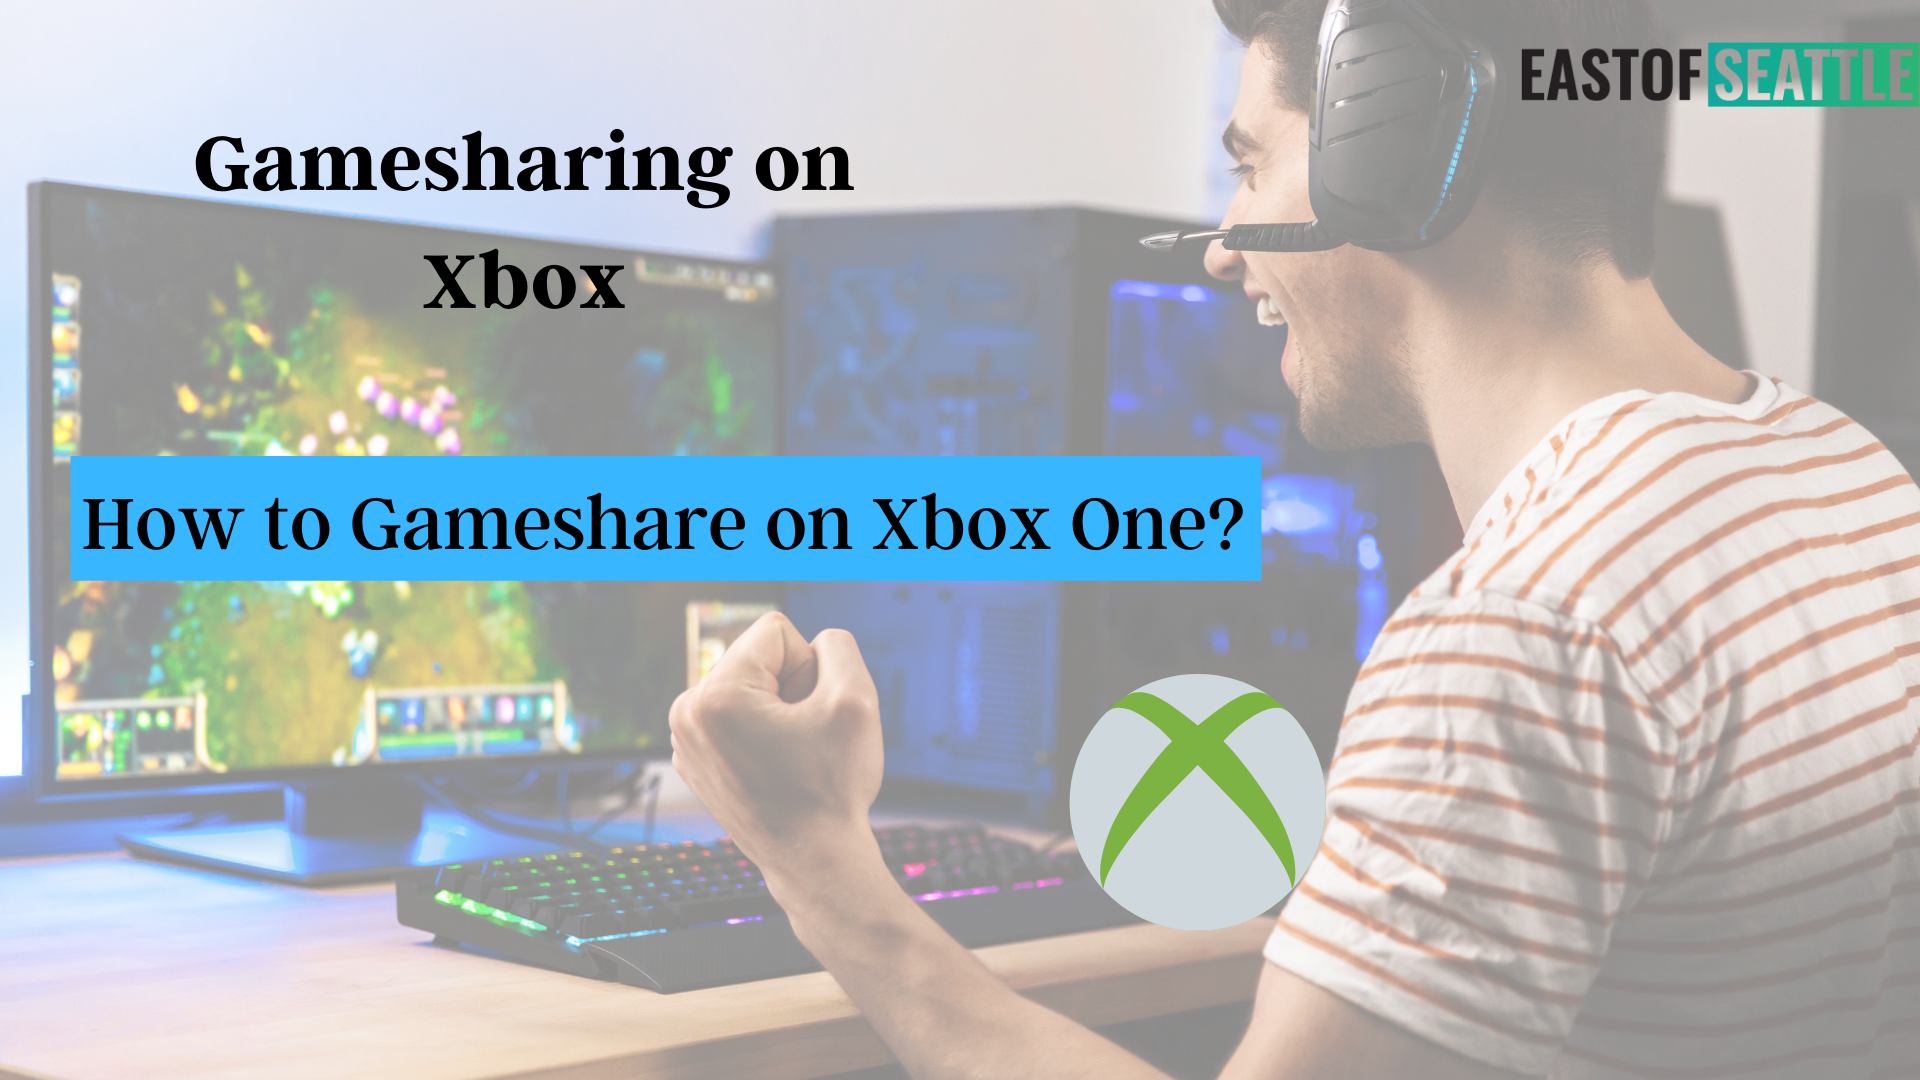 Gamesharing on Xbox:How to Gameshare on Xbox One